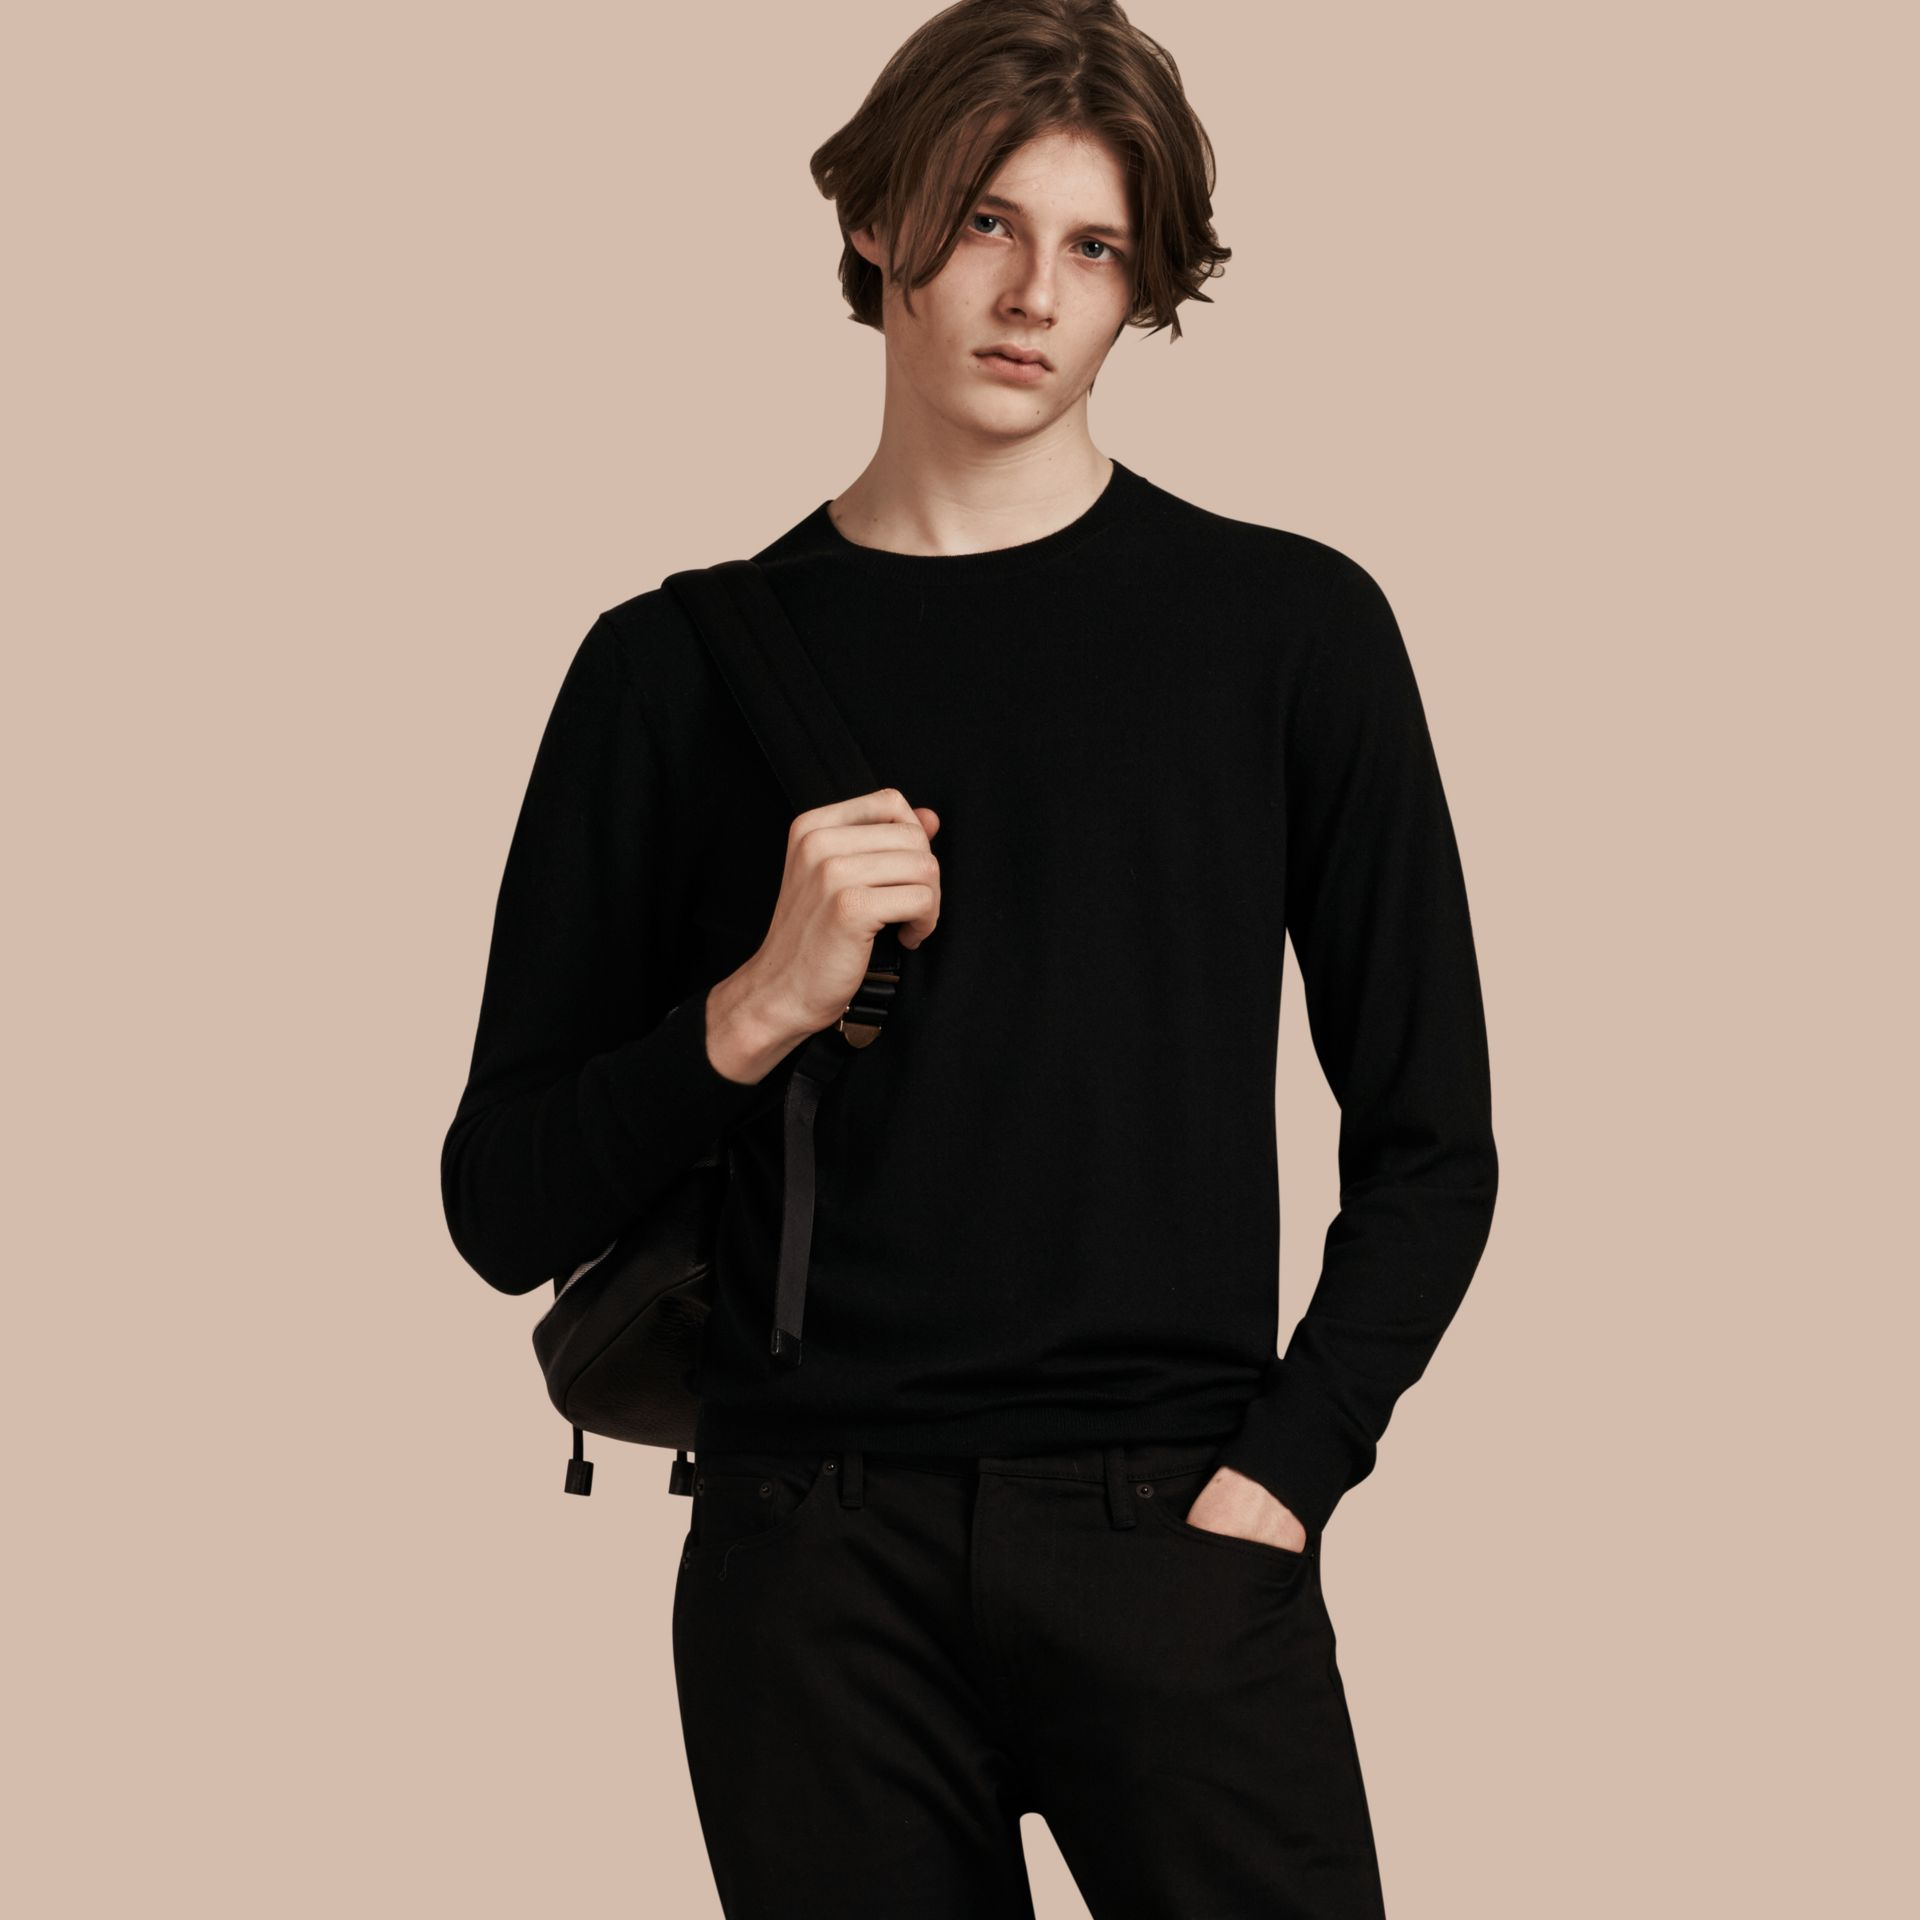 Black Lightweight Crew Neck Cashmere Sweater with Check Trim Black - gallery image 1